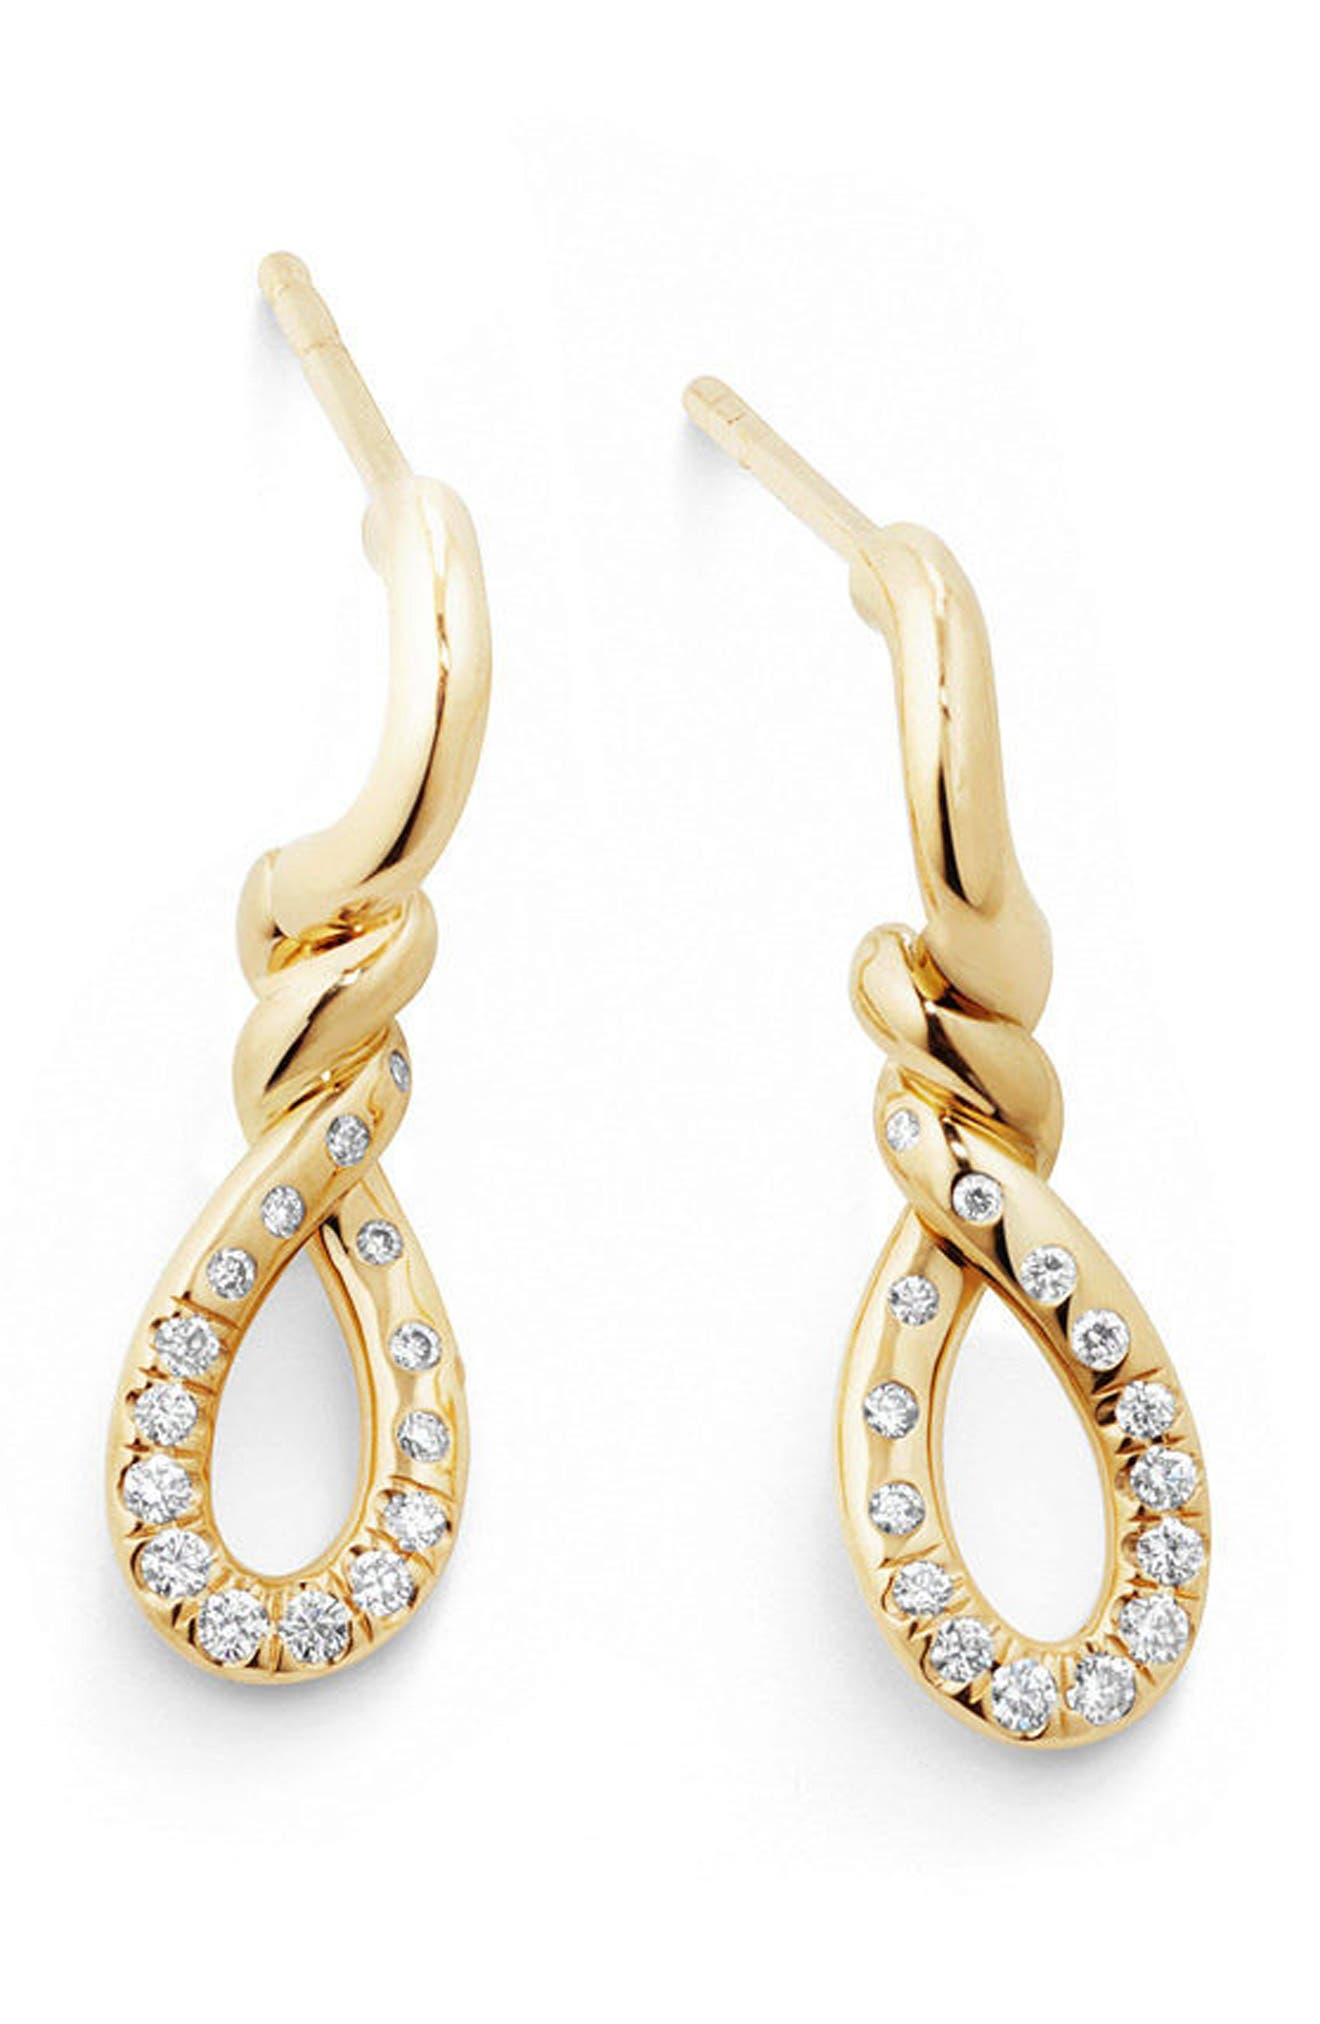 Continuance Drop Earrings in 18K Gold with Diamonds,                             Alternate thumbnail 2, color,                             YELLOW GOLD